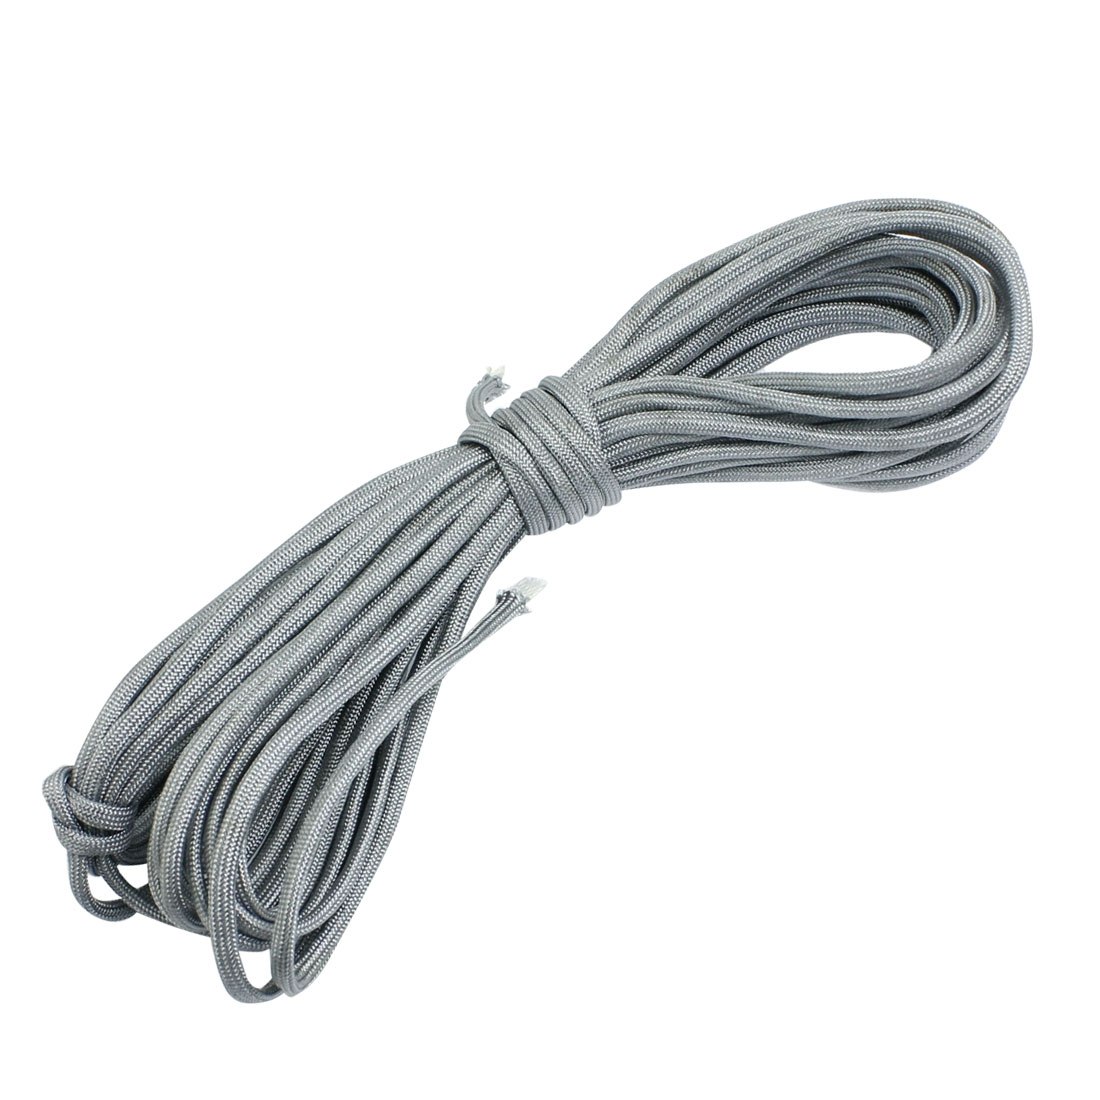 Airsoft War Game Gray 4mm Diameter Nylon Braided Cord Rope 10m